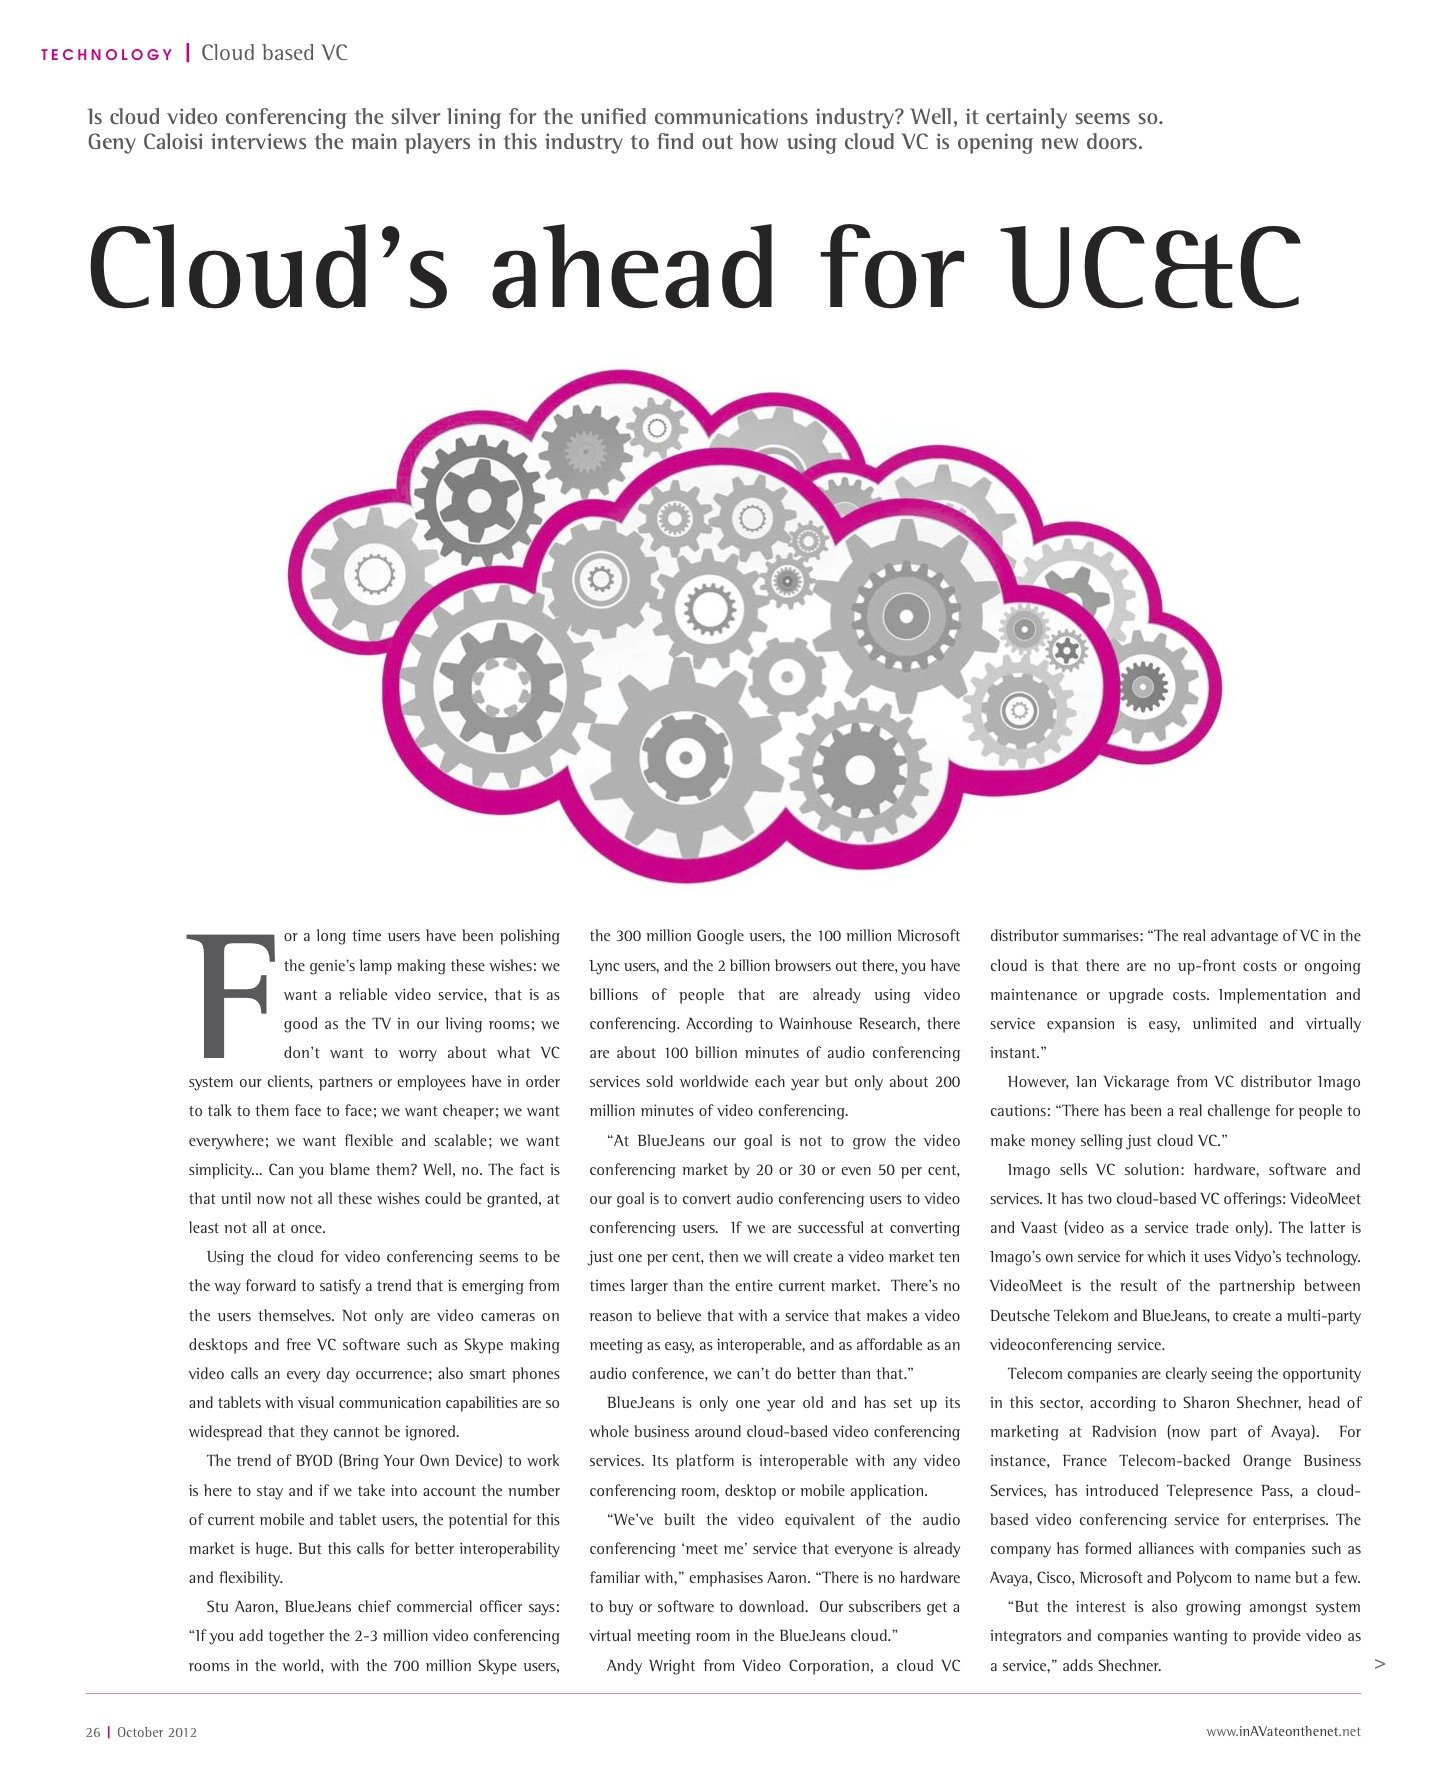 Cloud's ahead for UC&C - Geny Caloisi